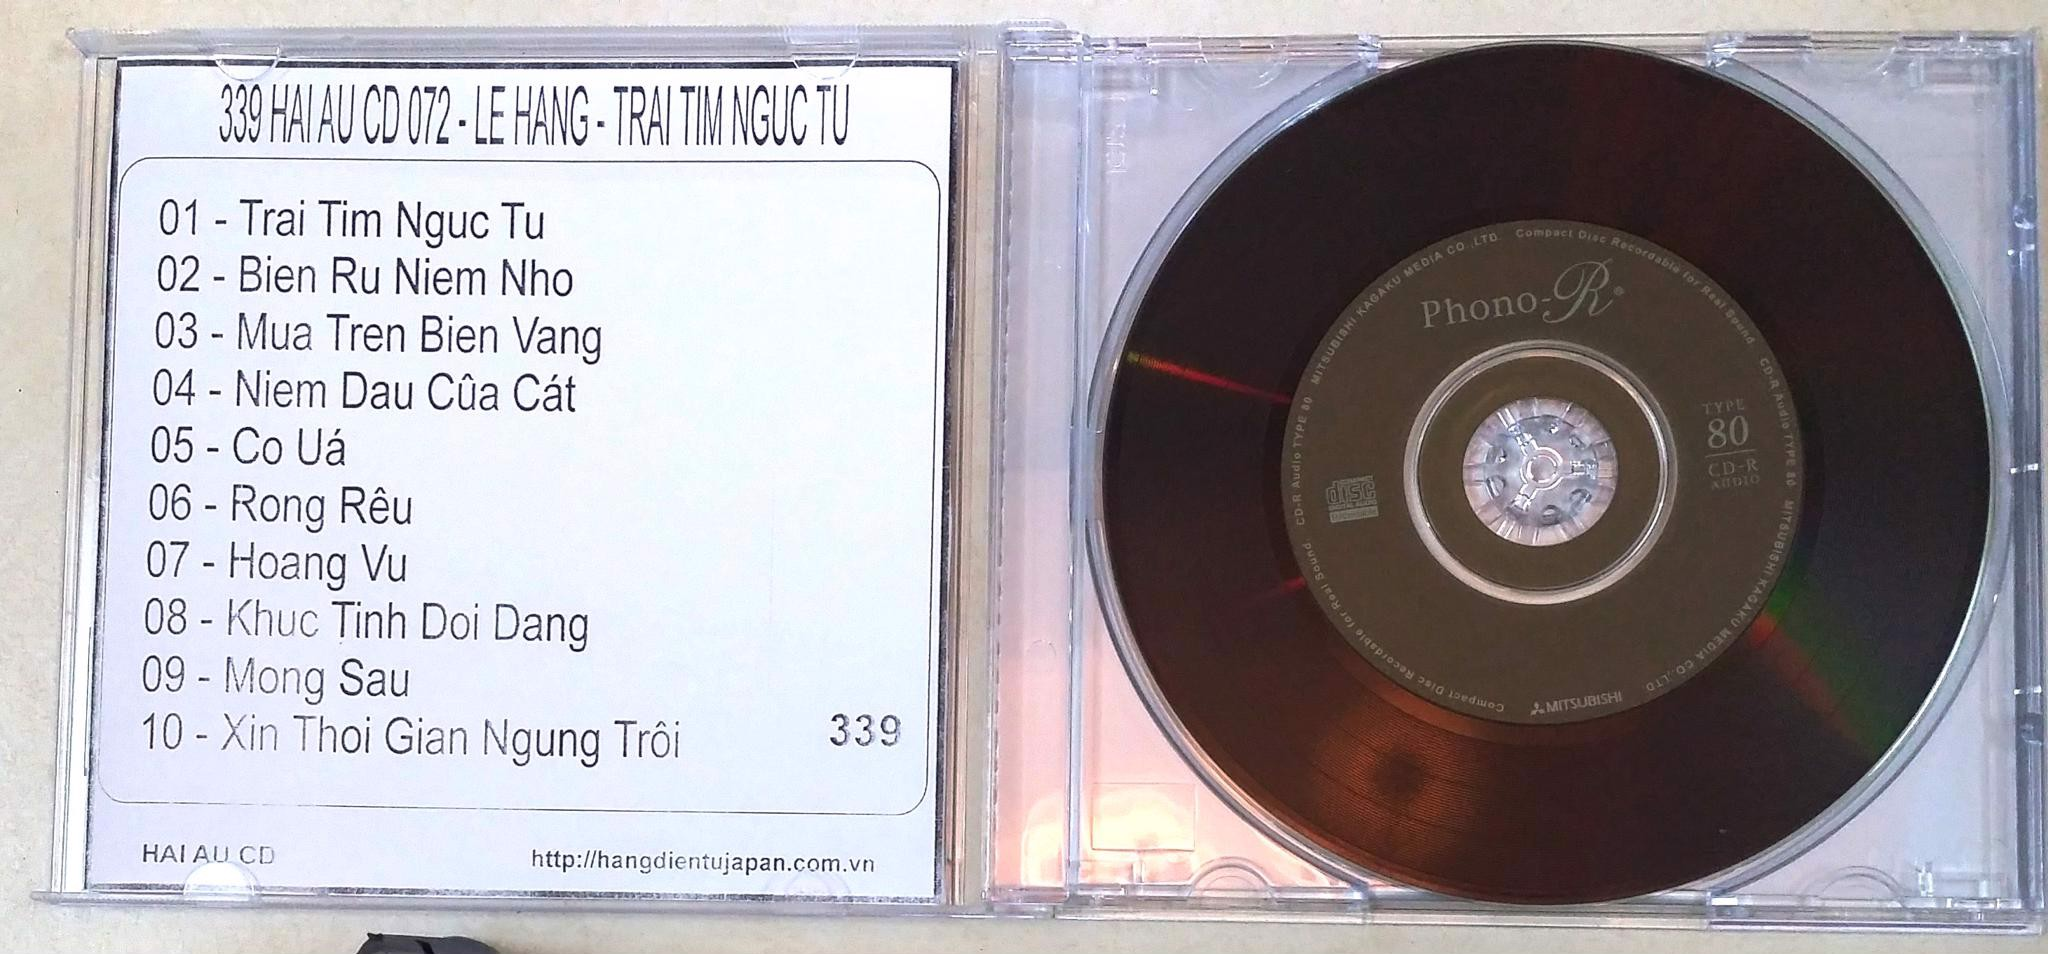 339 HAI AU CD 072 - LE HANG - TRAI TIM NGUC TU